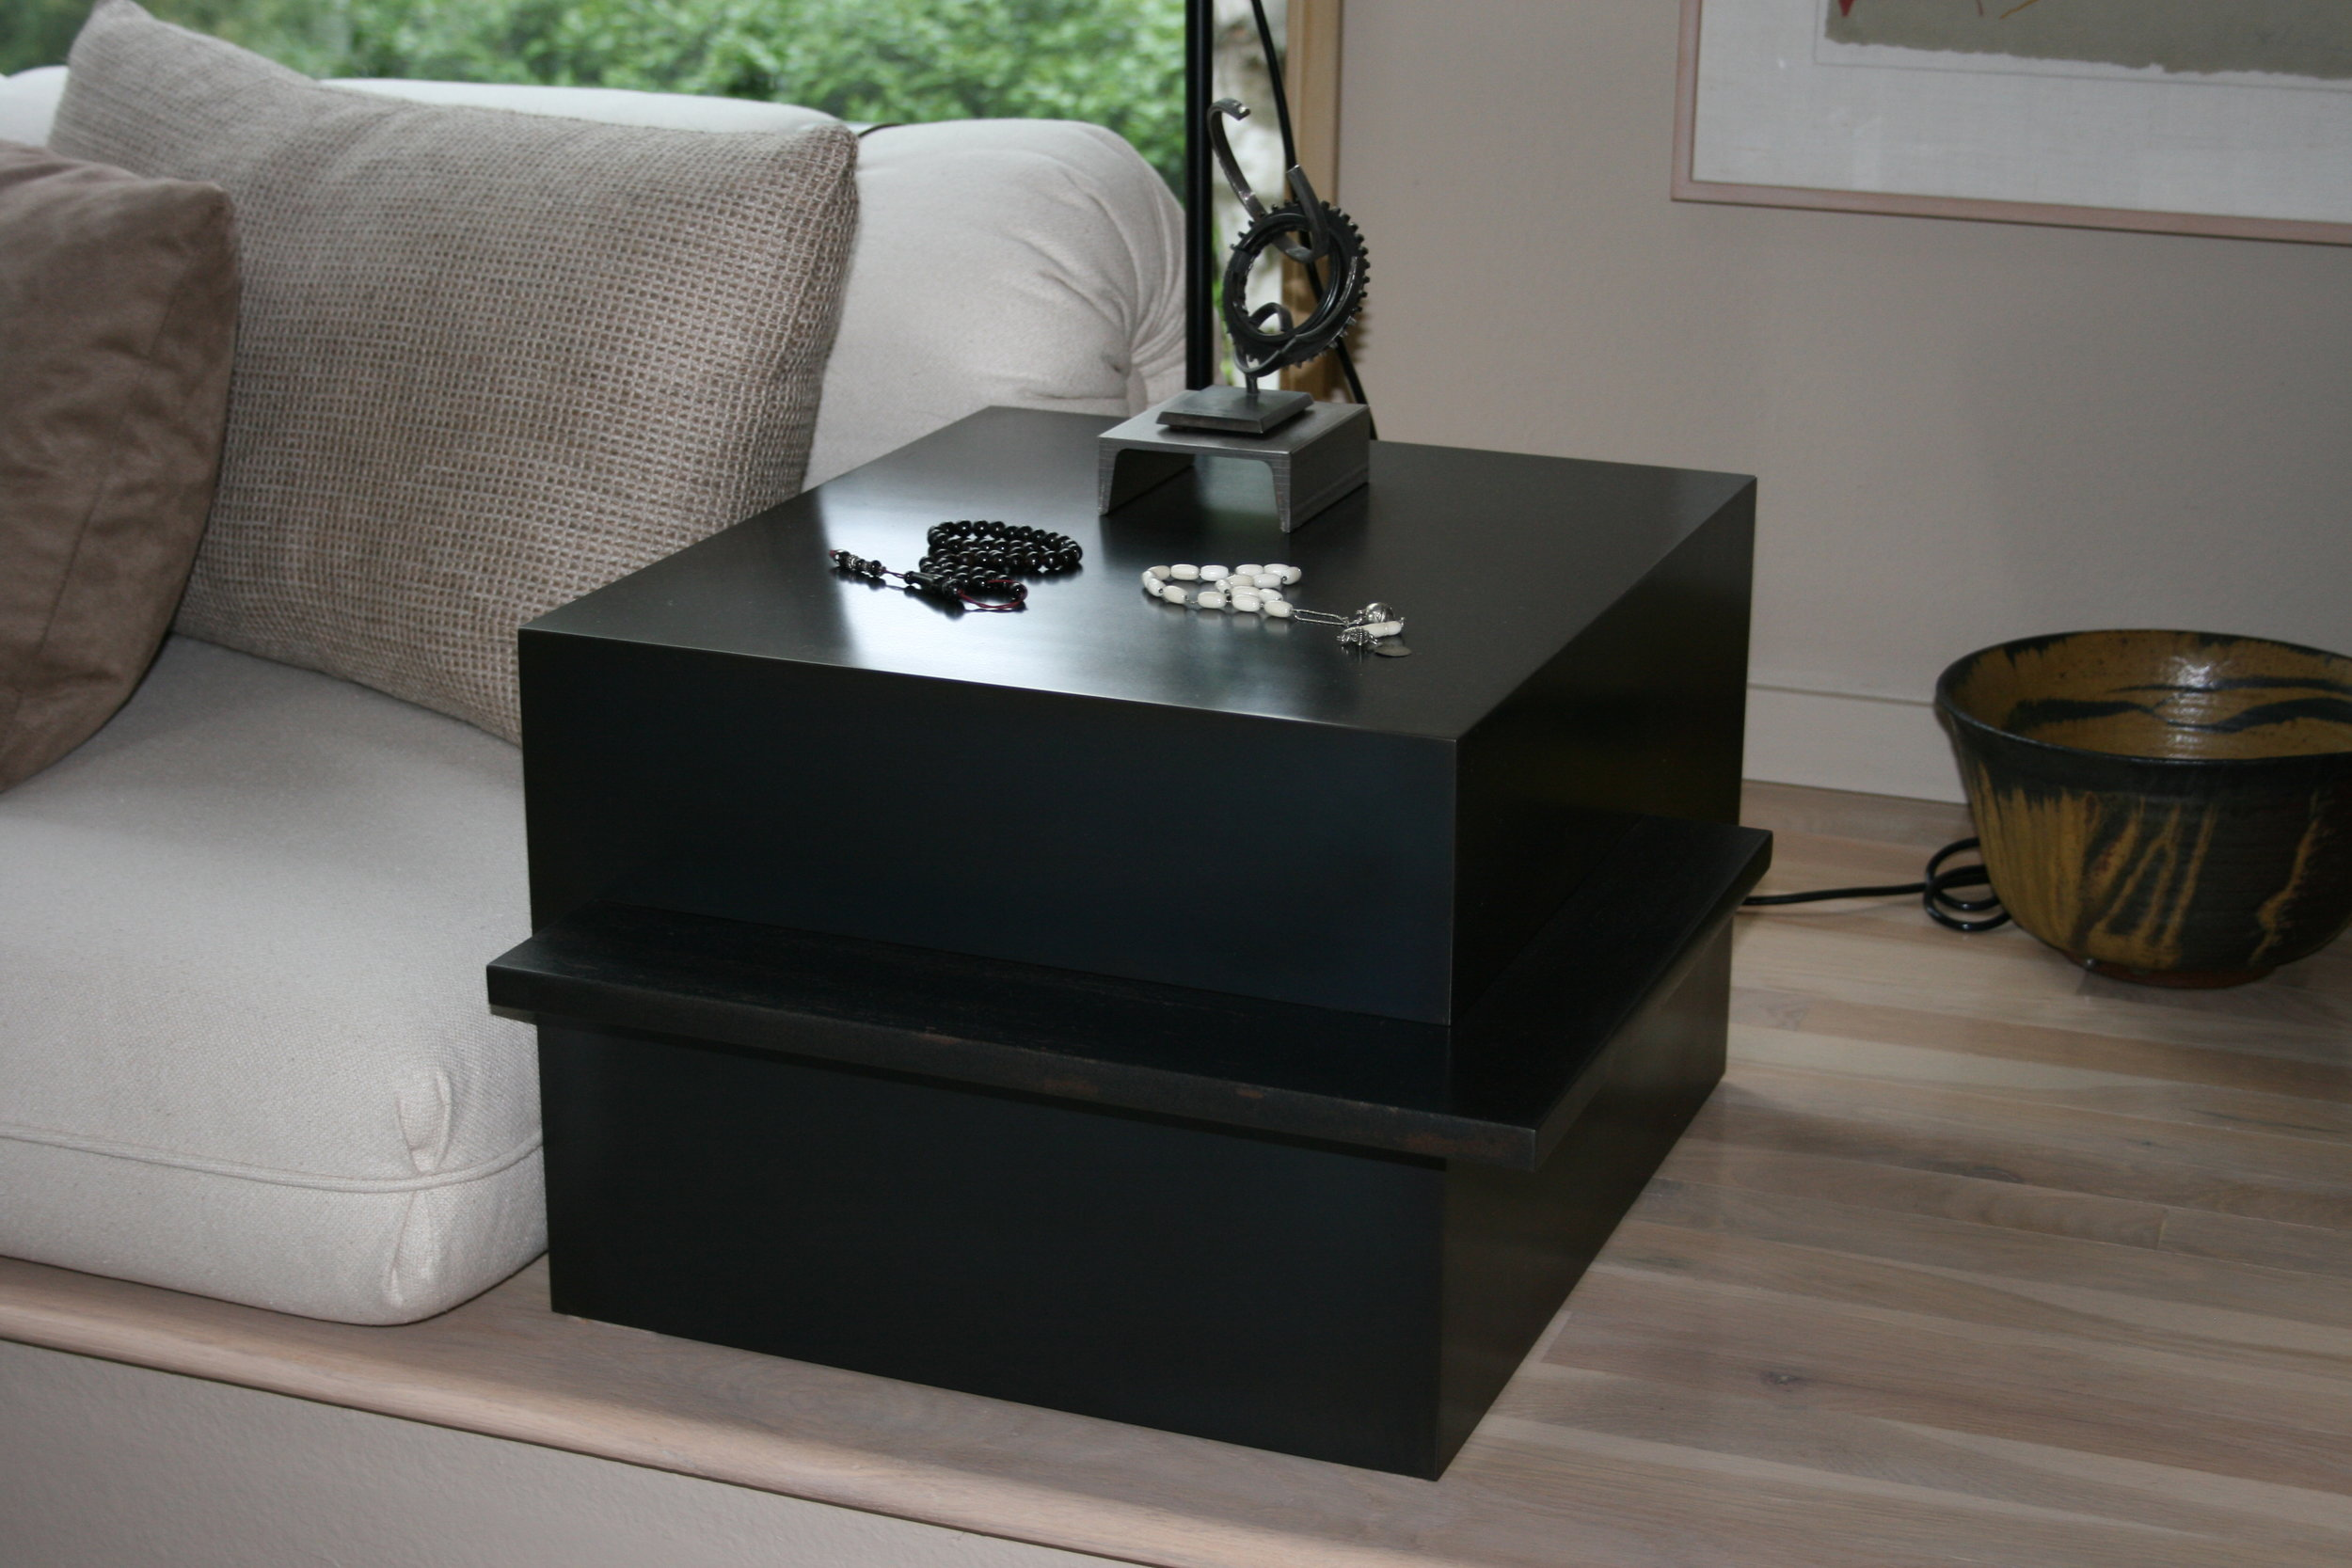 Cube Table with Ledge, Blackened Steel.JPG